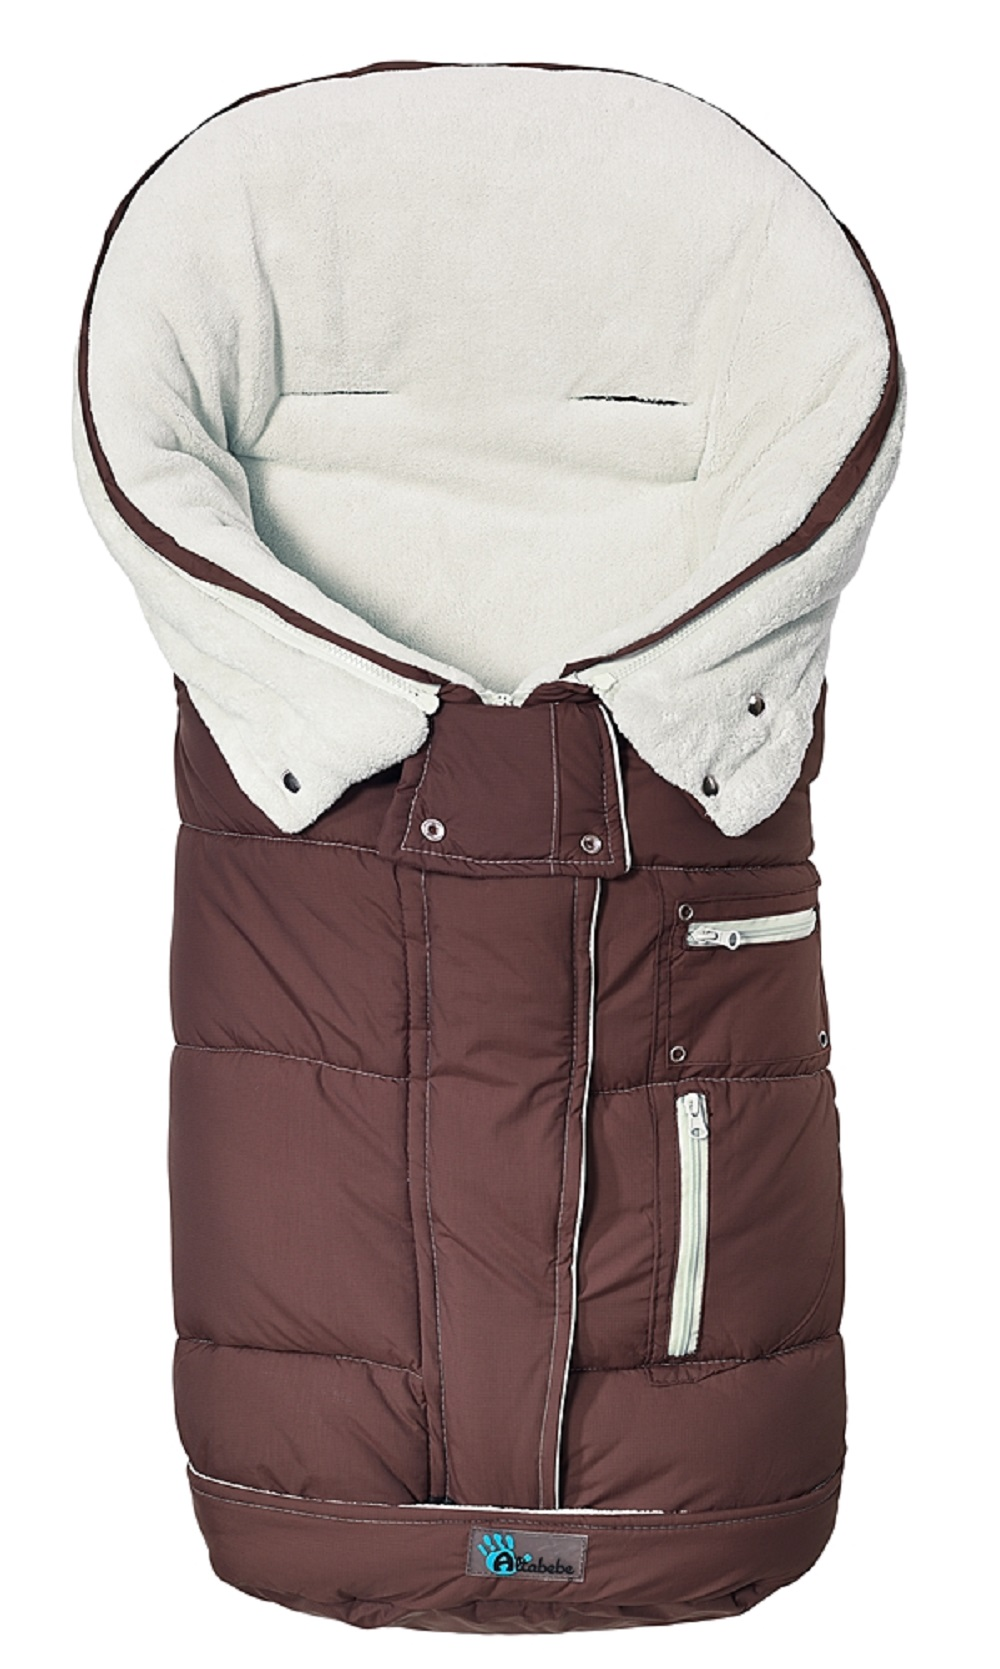 Зимний конверт Altabebe Clima Guard brown/whitewashЗимние конверты<br>Зимний конверт Altabebe Clima Guard brown/whitewash<br>